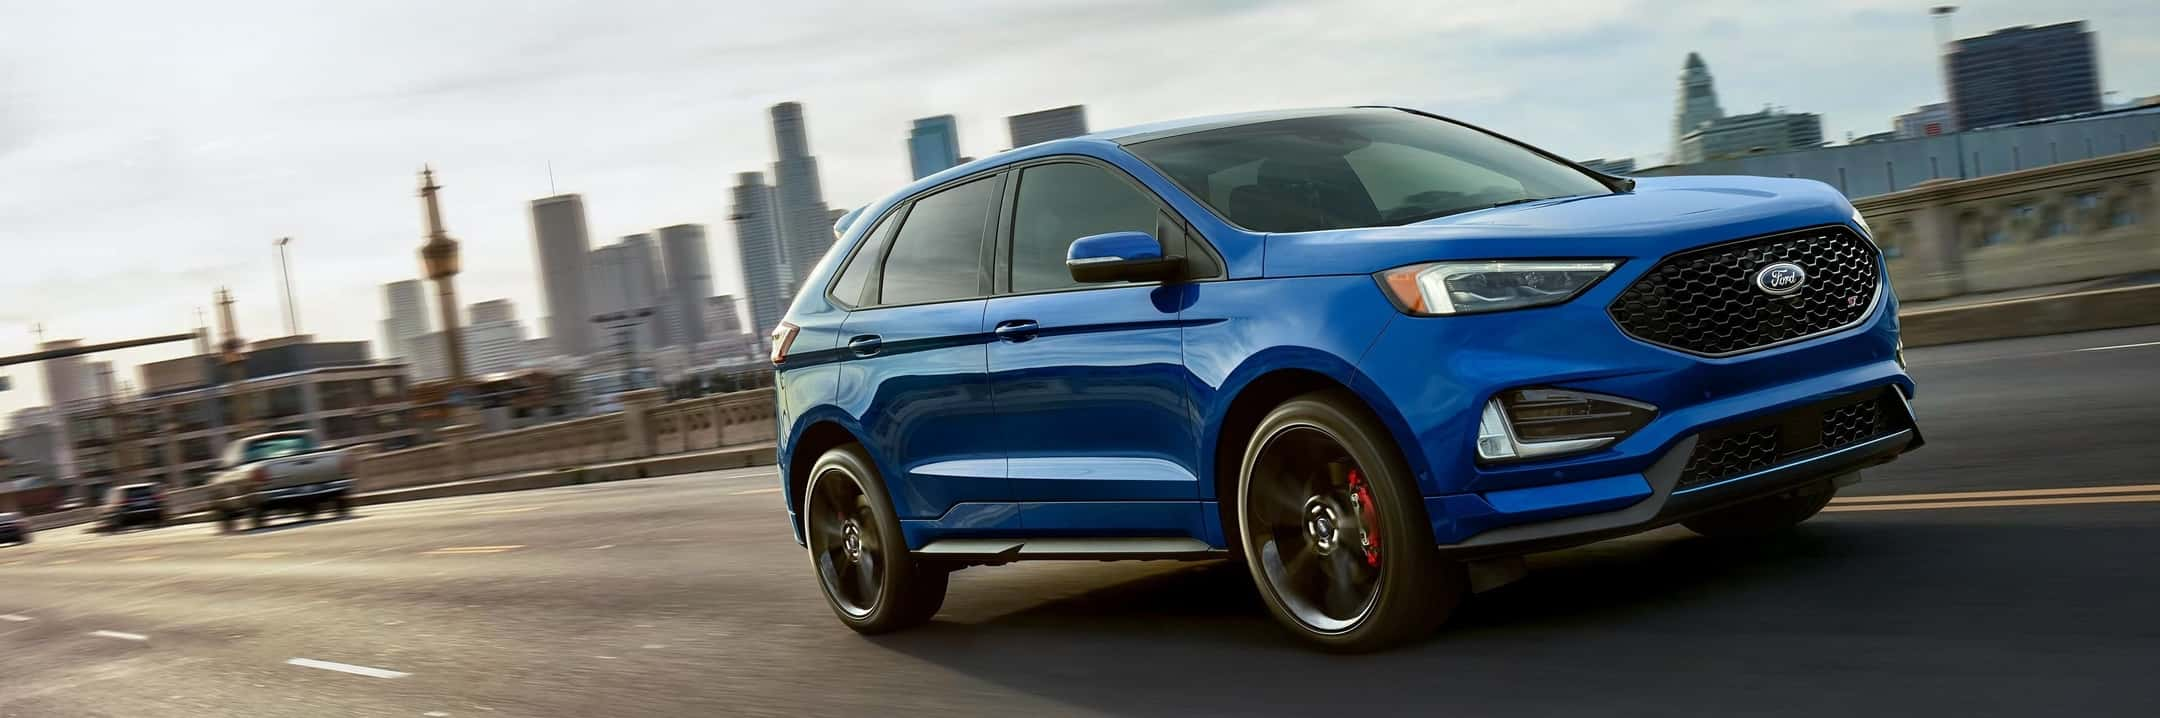 2019 Ford Edge ST driving in a street